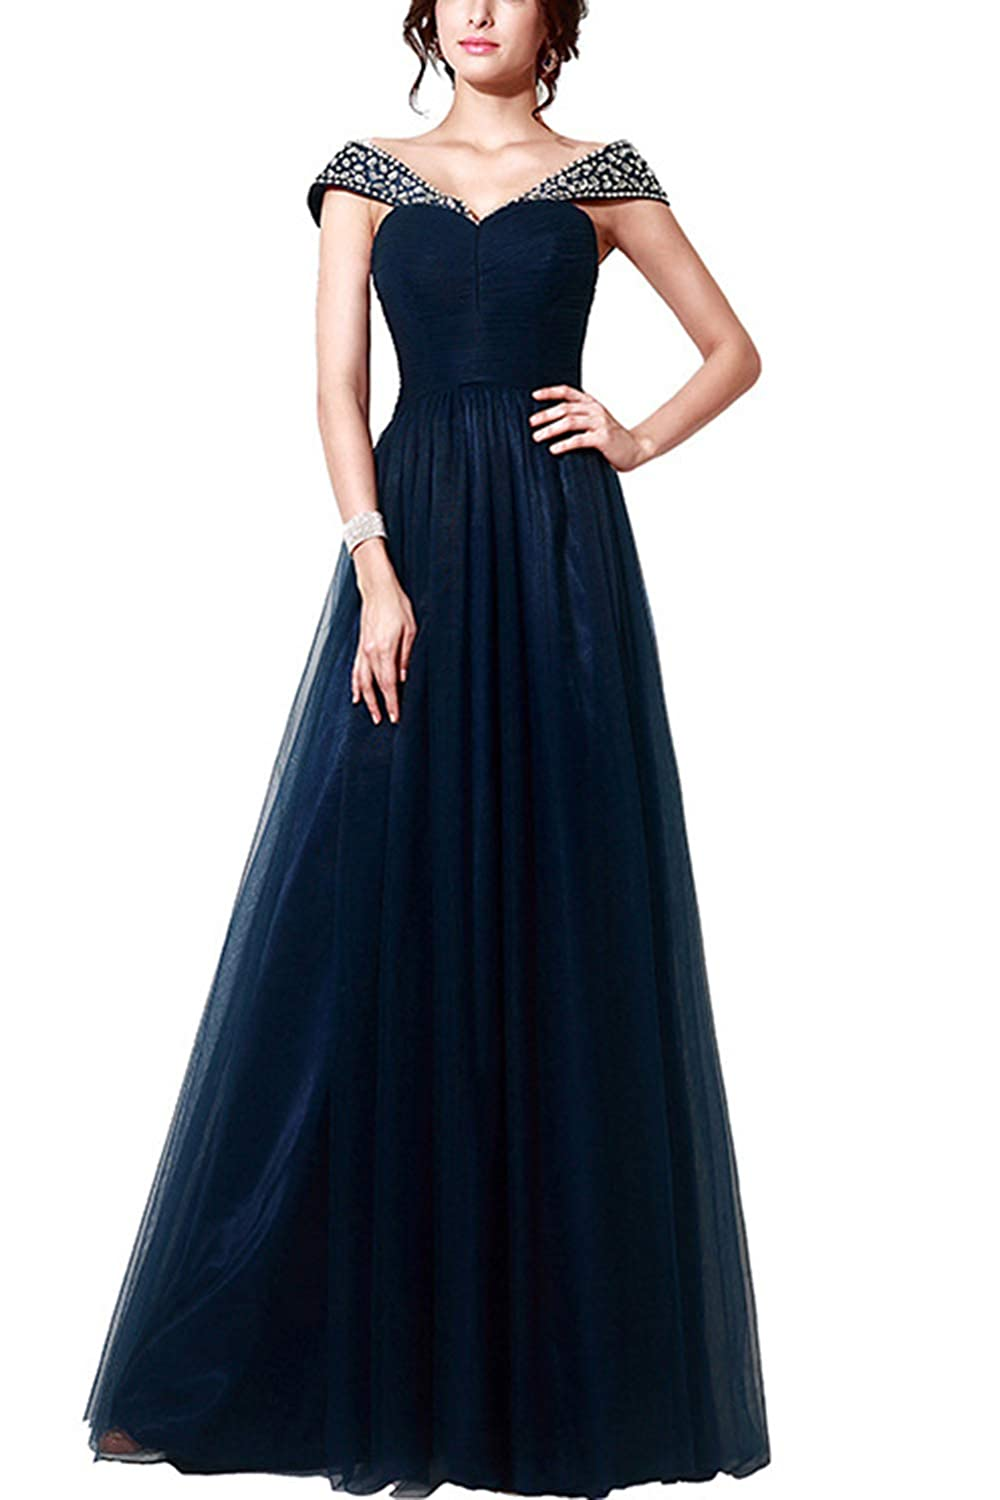 bluee Women's Rhinestones Sleeveless VNeck Maxi Dress Elegance Plus Size Wedding Evening Party Dress Special Occasion Dress bluee